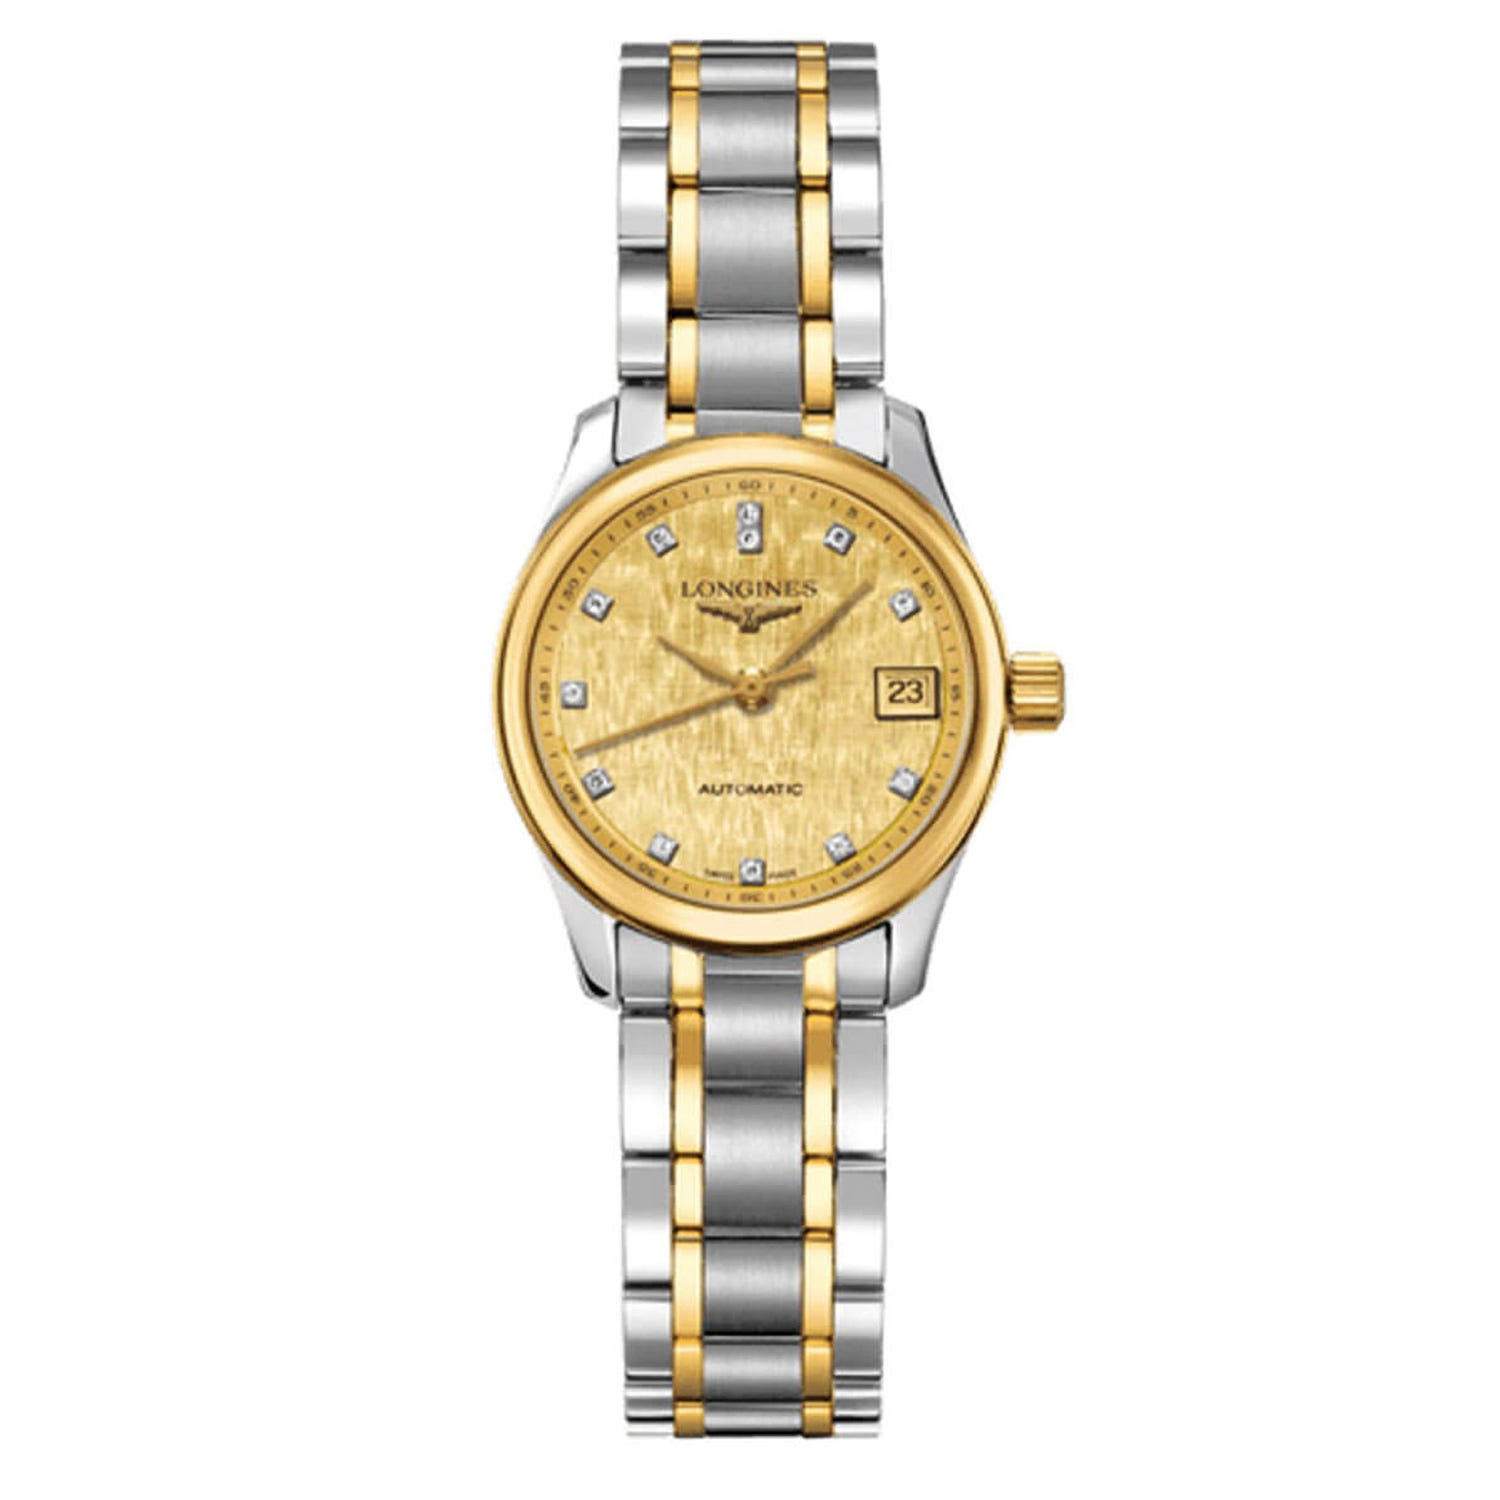 Longines Master Collection ladies' automatic stone set two colour bracelet watch